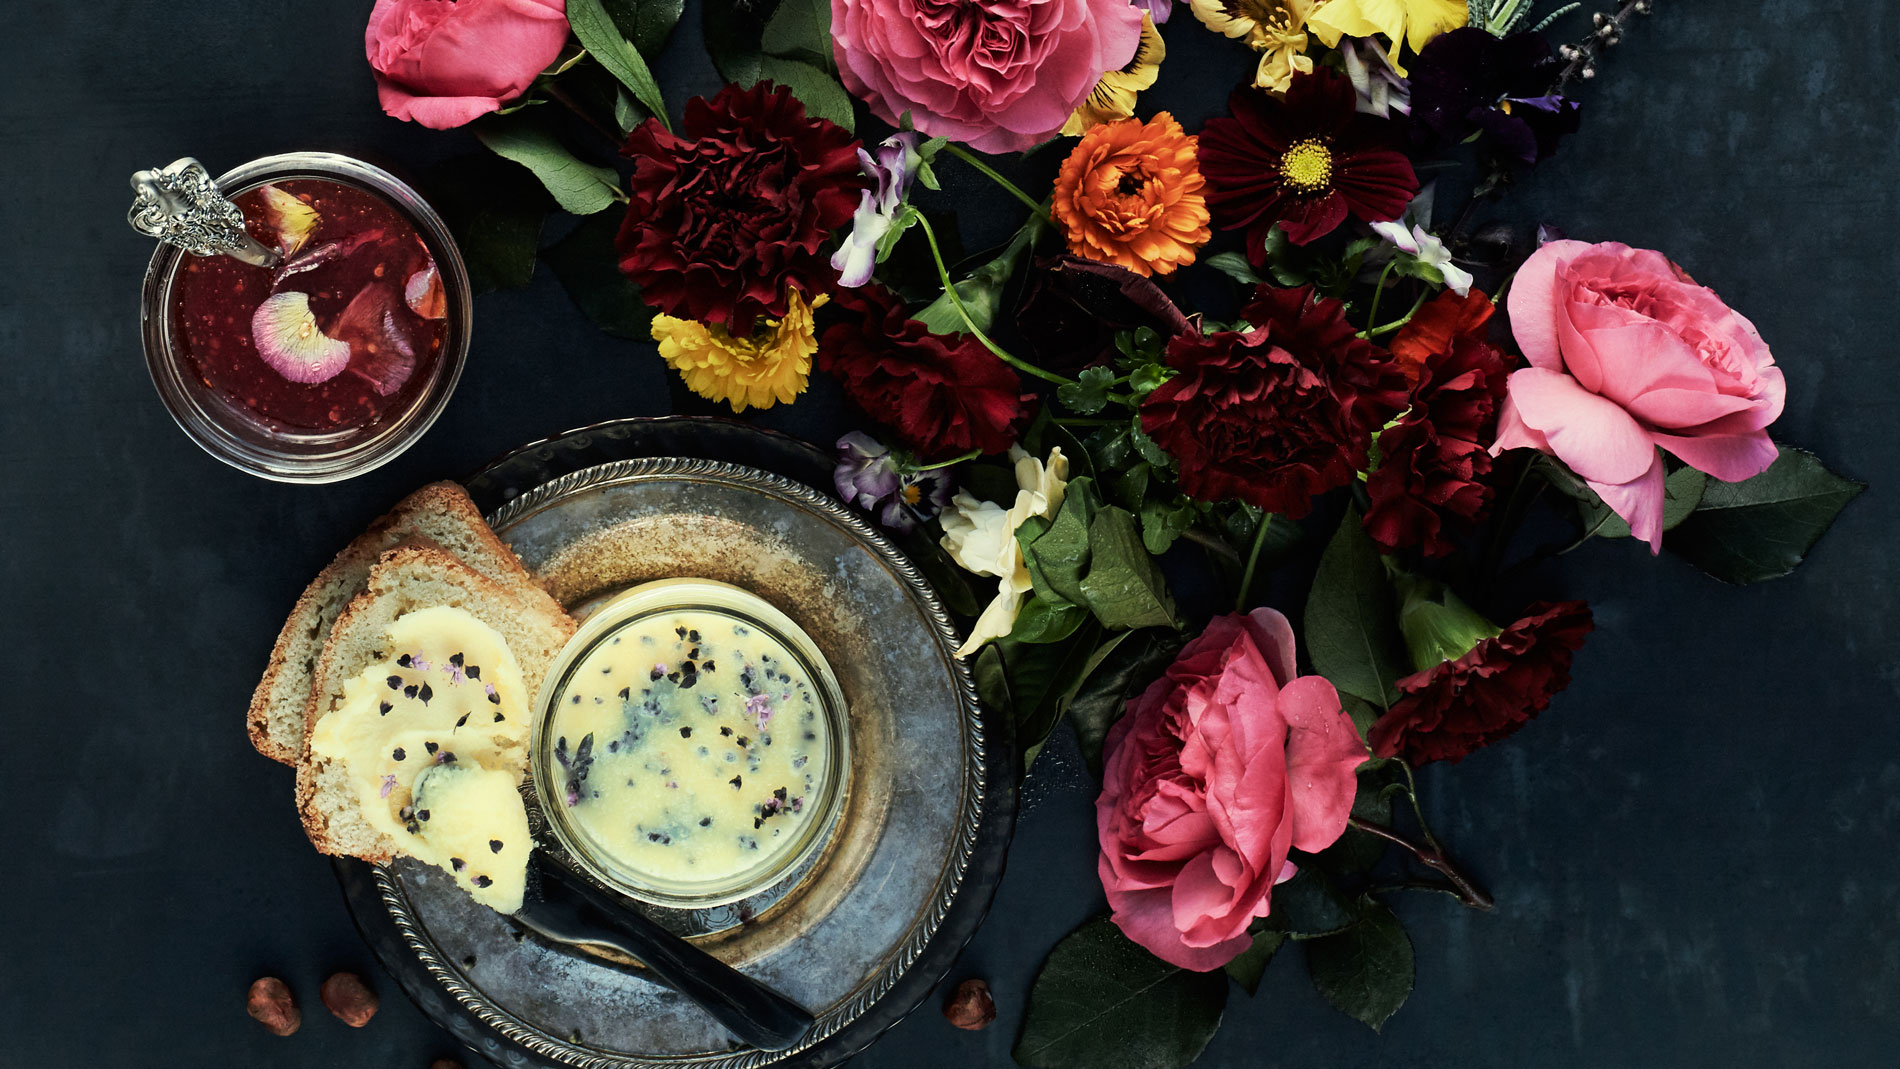 9 Edible Flower Recipes for Mother's Day